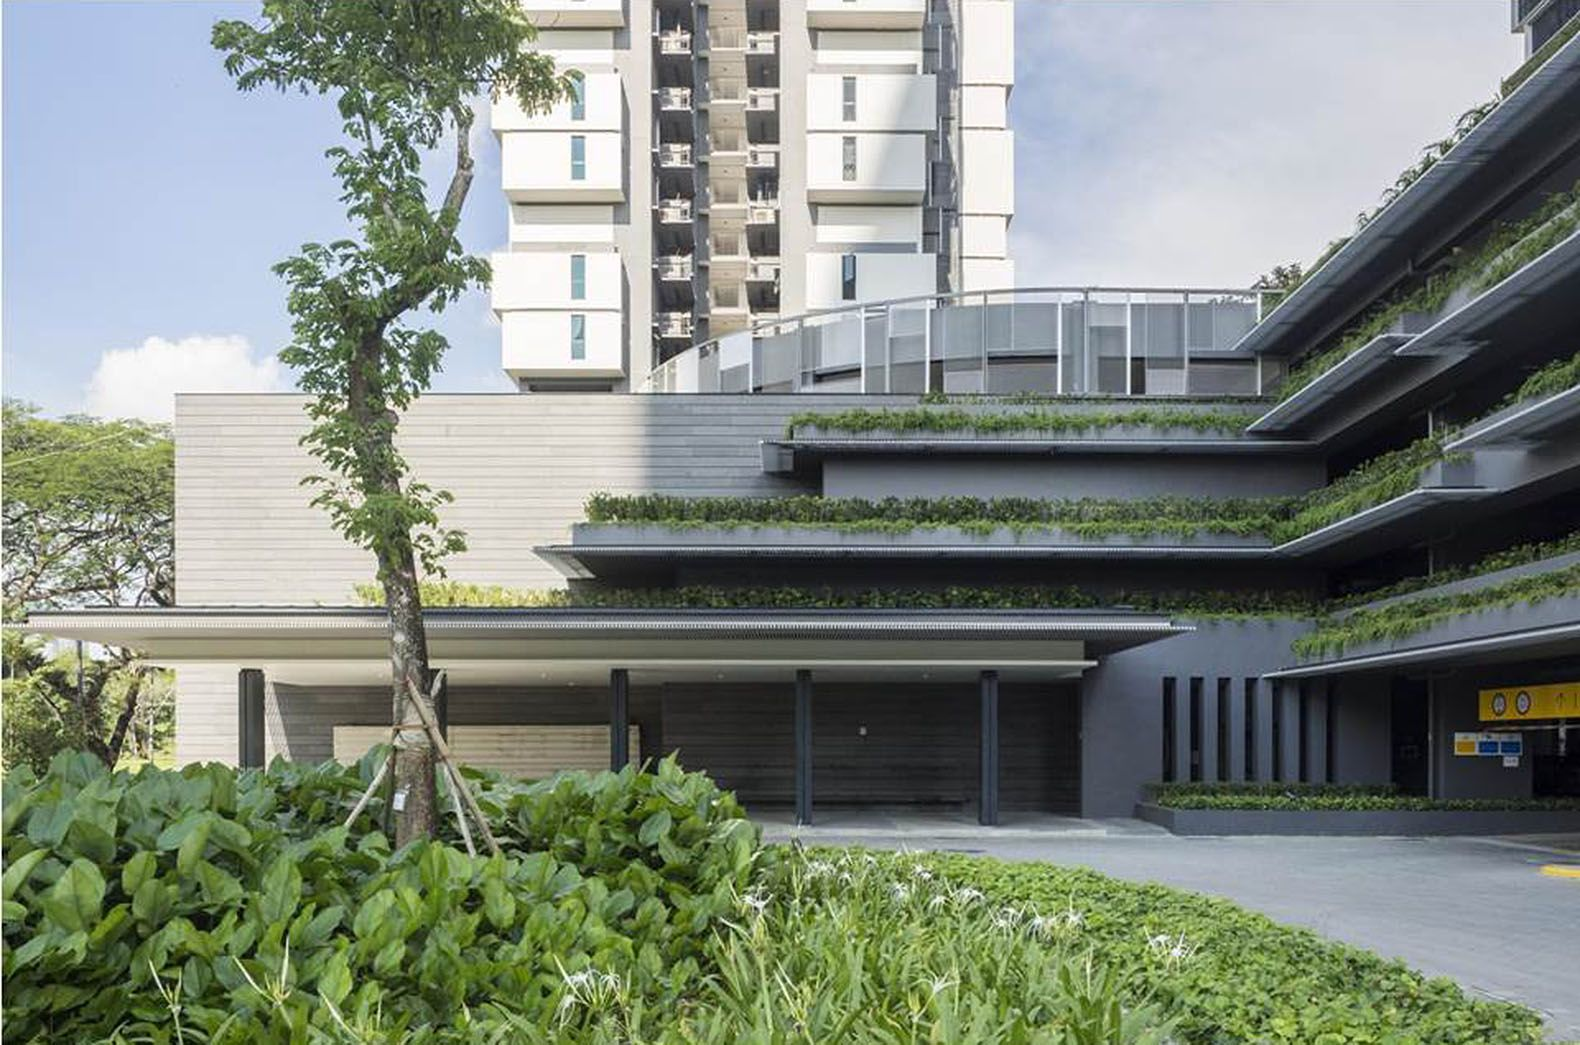 Singapore S Solar Powered Sky Terrace Residential Towers Combine All The Best Of Green Living Y Tưởng